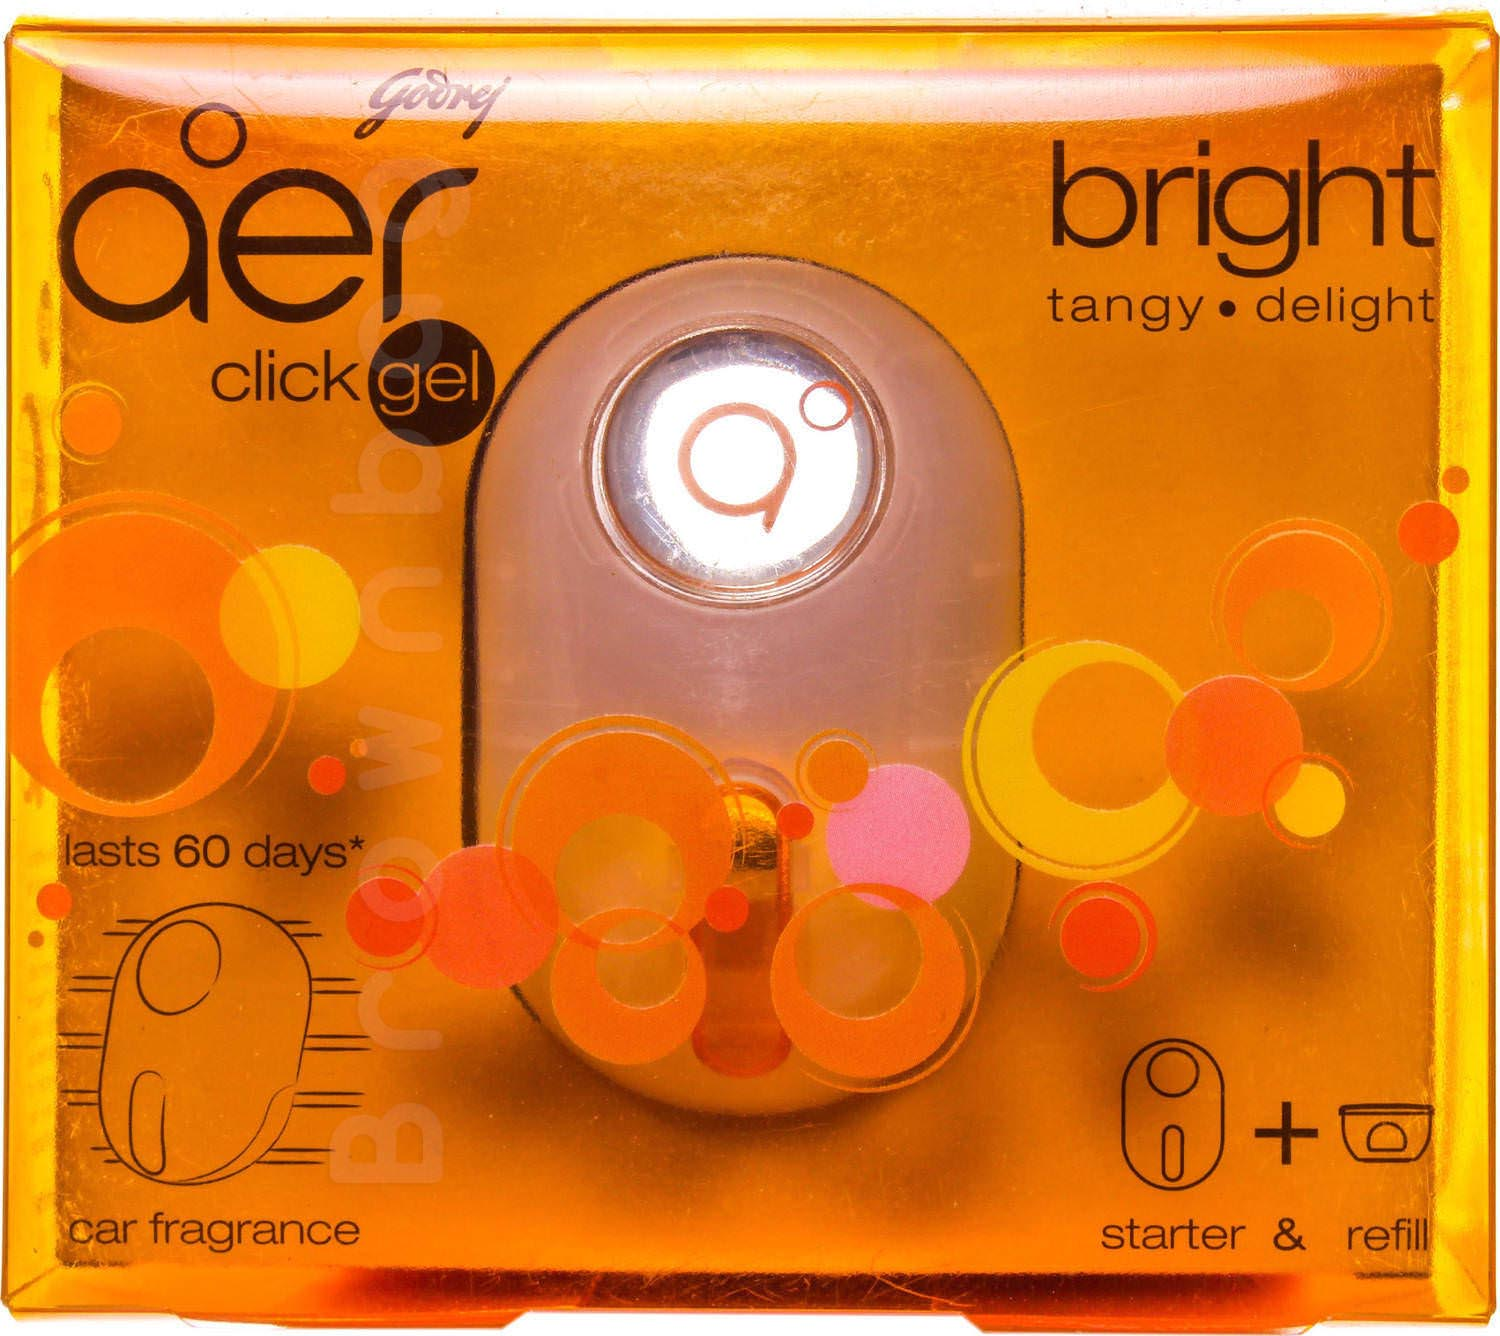 Godrej Aer Click Gel Car Fragrance with Bright Tangy Delight